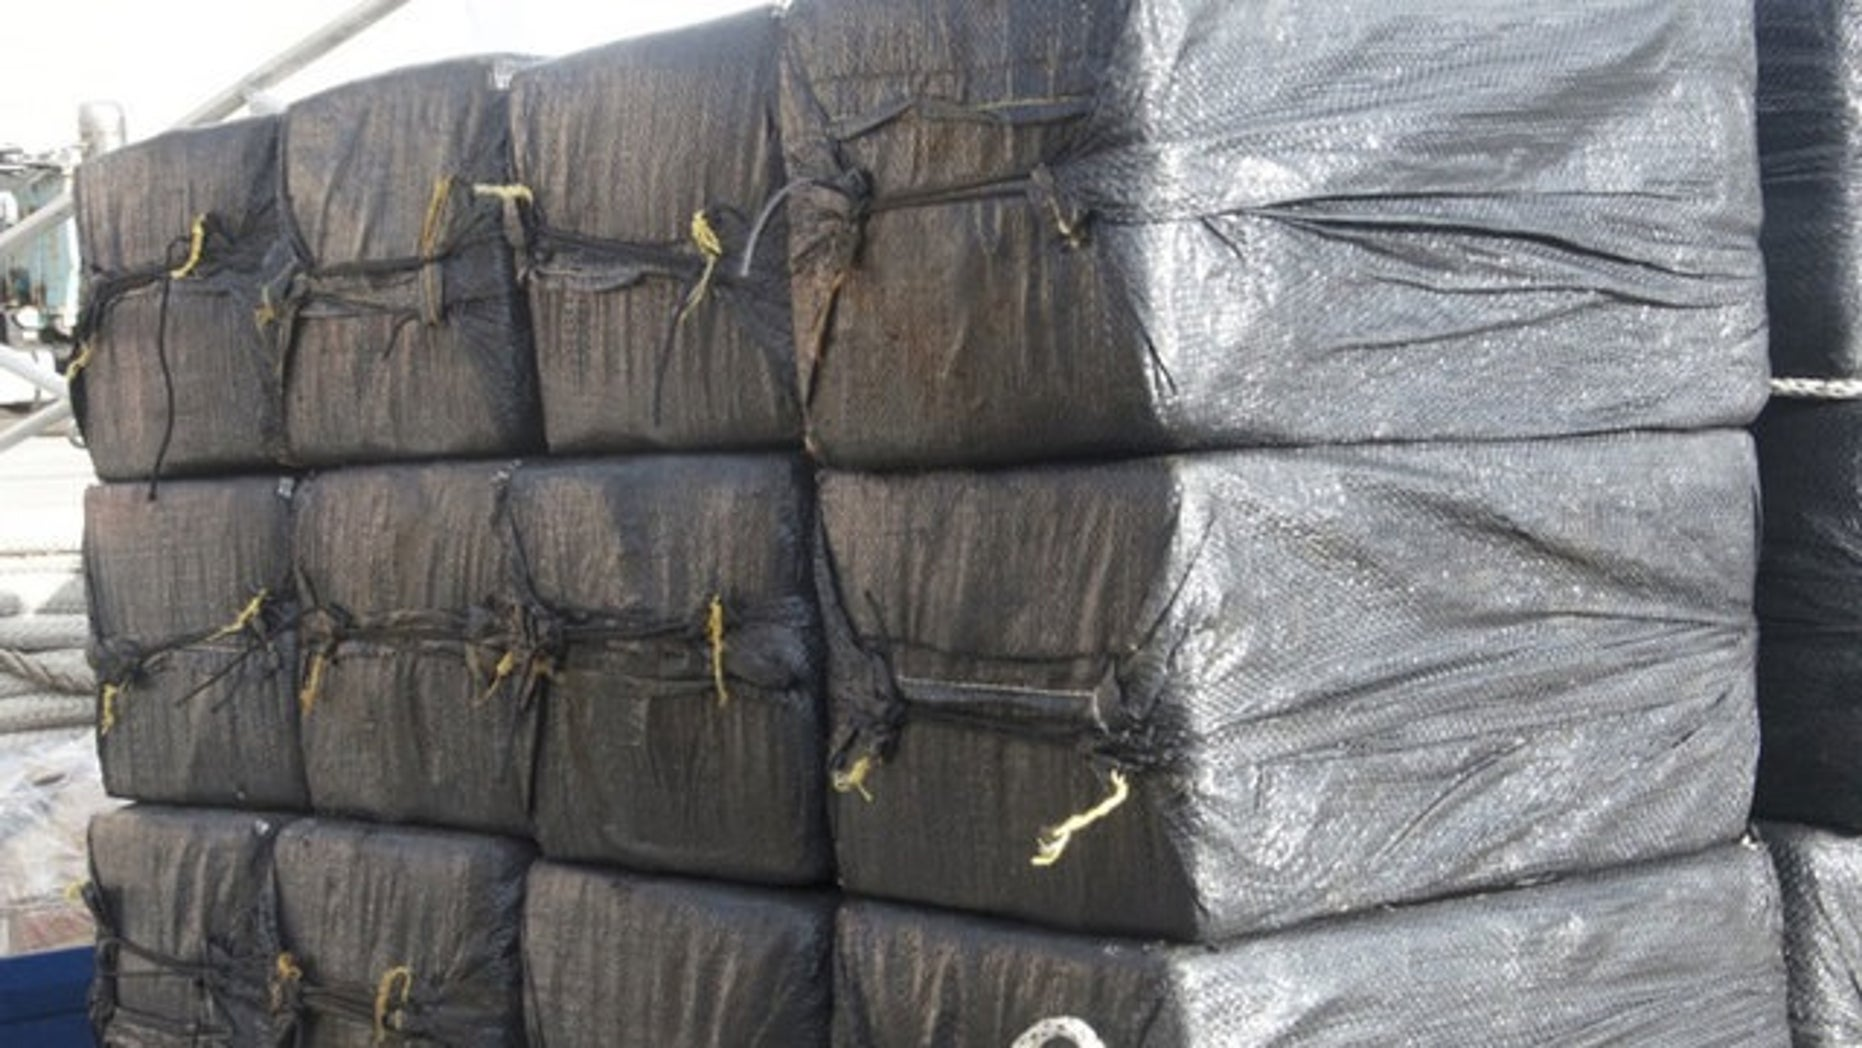 The Coast Guard unloaded some 3.1 tons of cocaine on Monday that was seized in international waters.